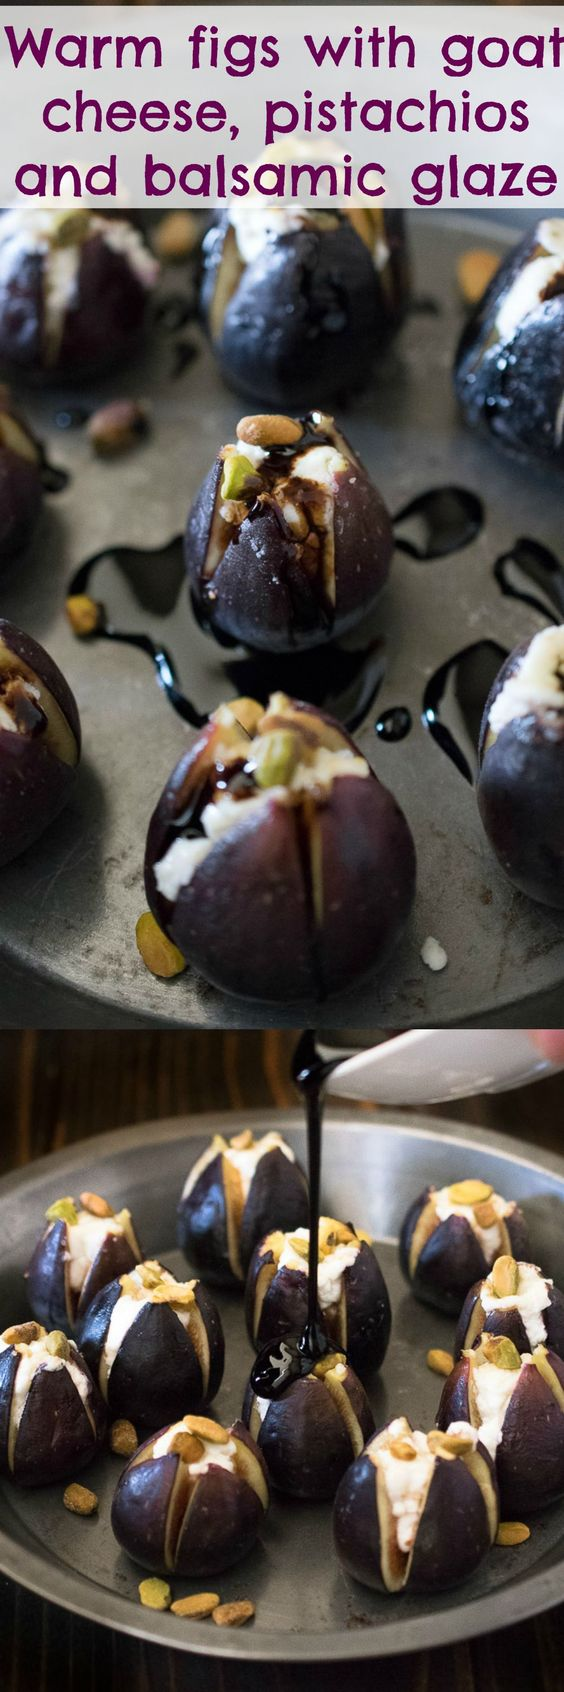 Warm Figs With Goat Cheese Pistachios And Balsamic Glaze